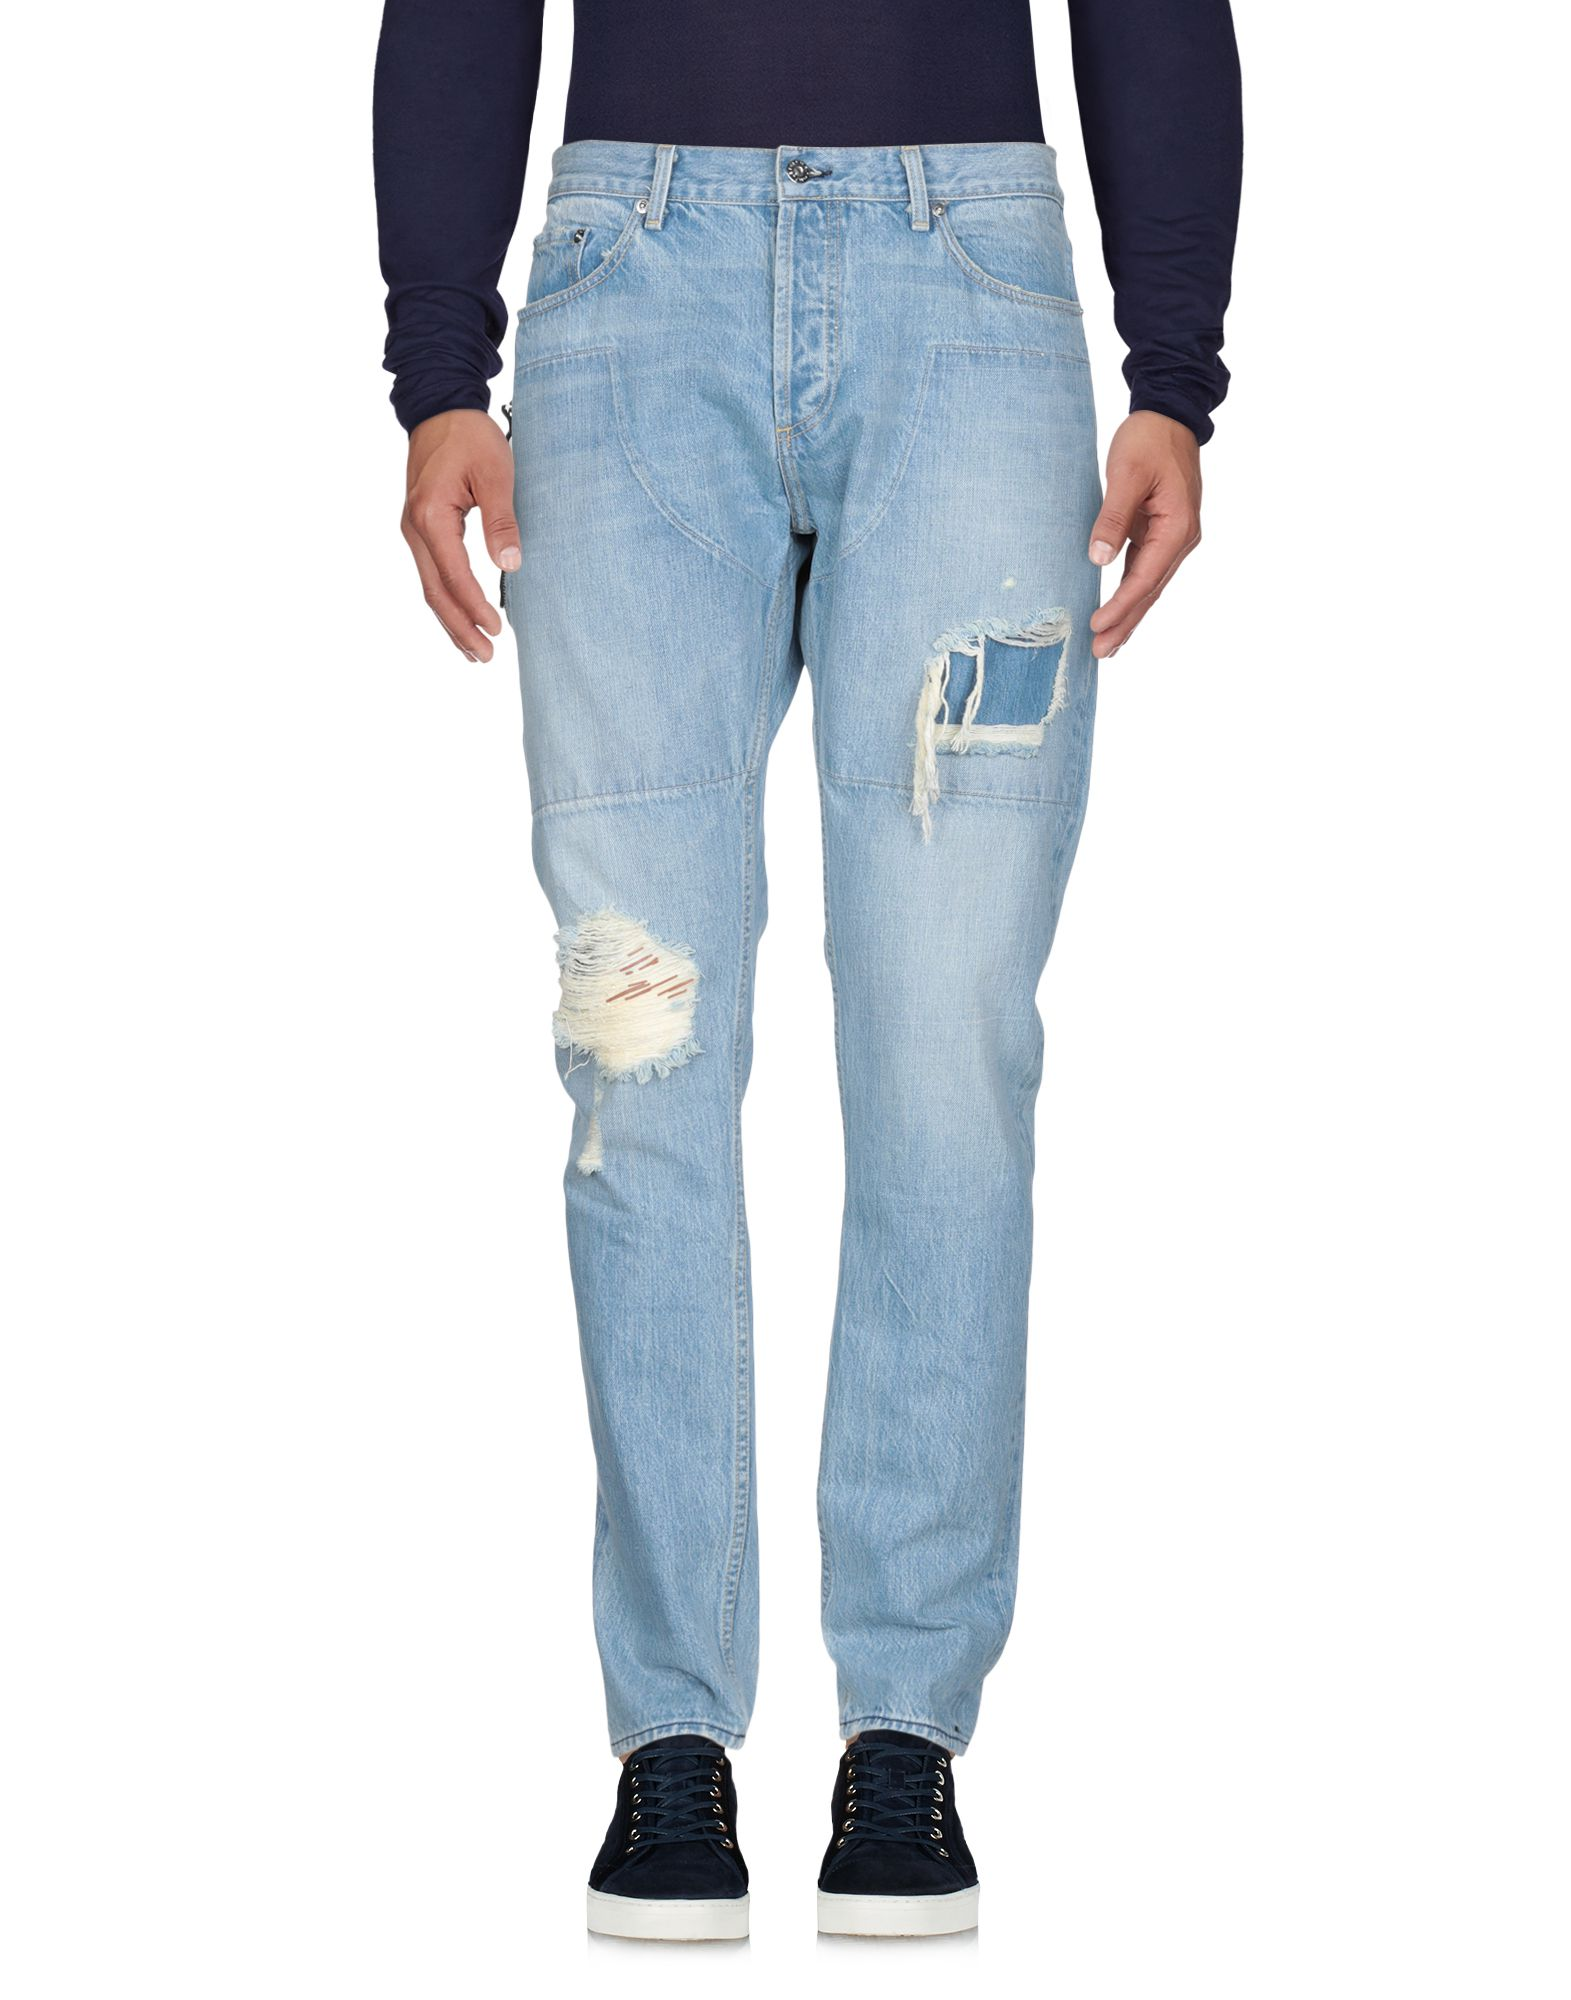 Pantaloni Jeans Mя.Completely 42685811BC Uomo - 42685811BC Mя.Completely 97fb42